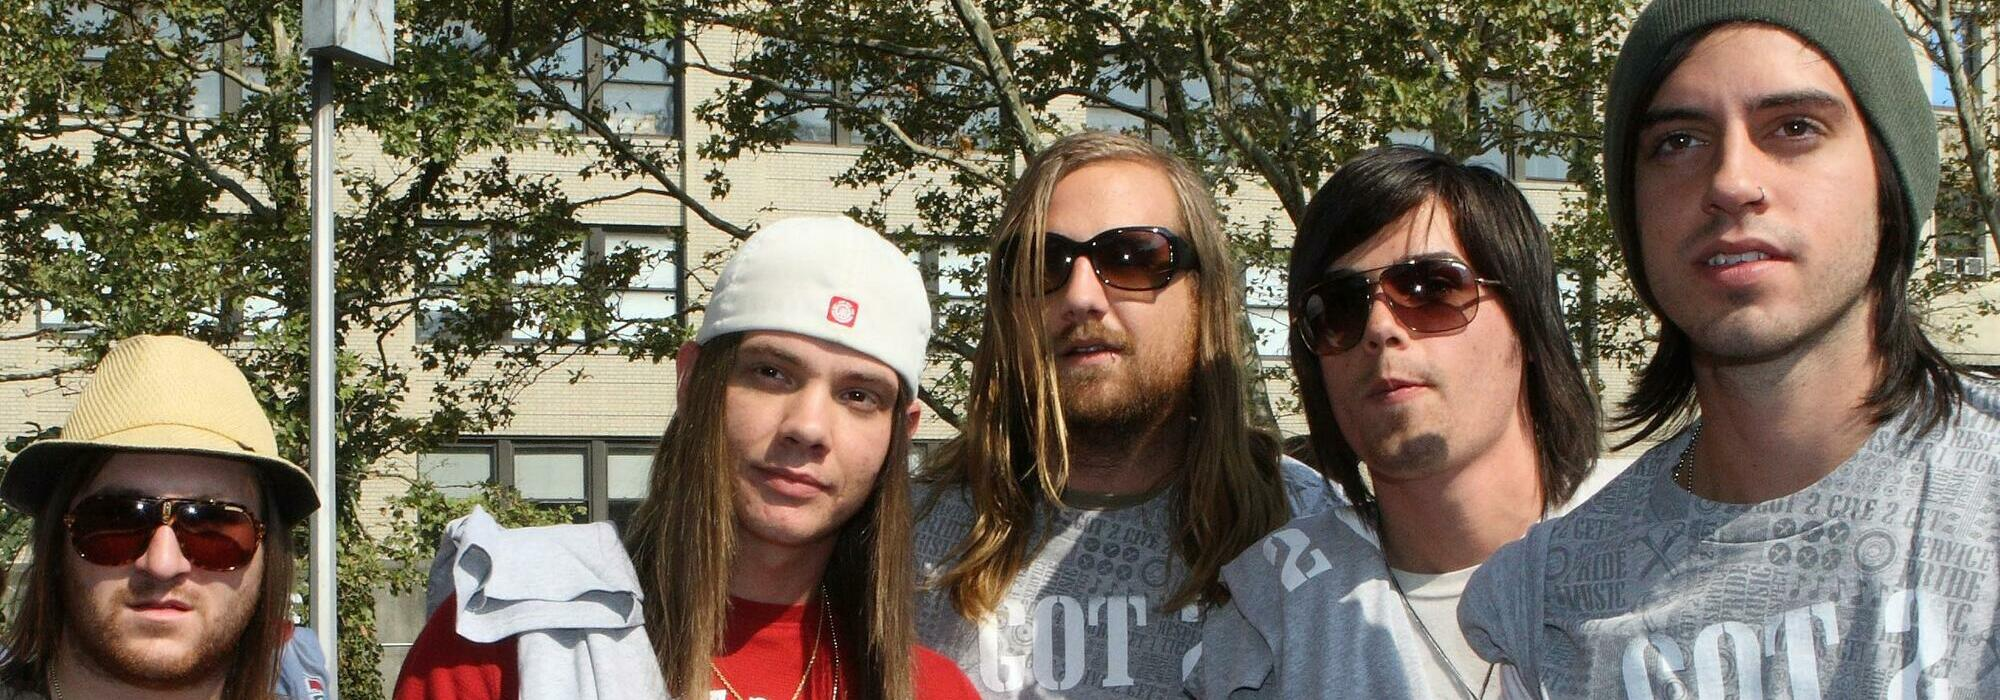 A The Red Jumpsuit Apparatus live event